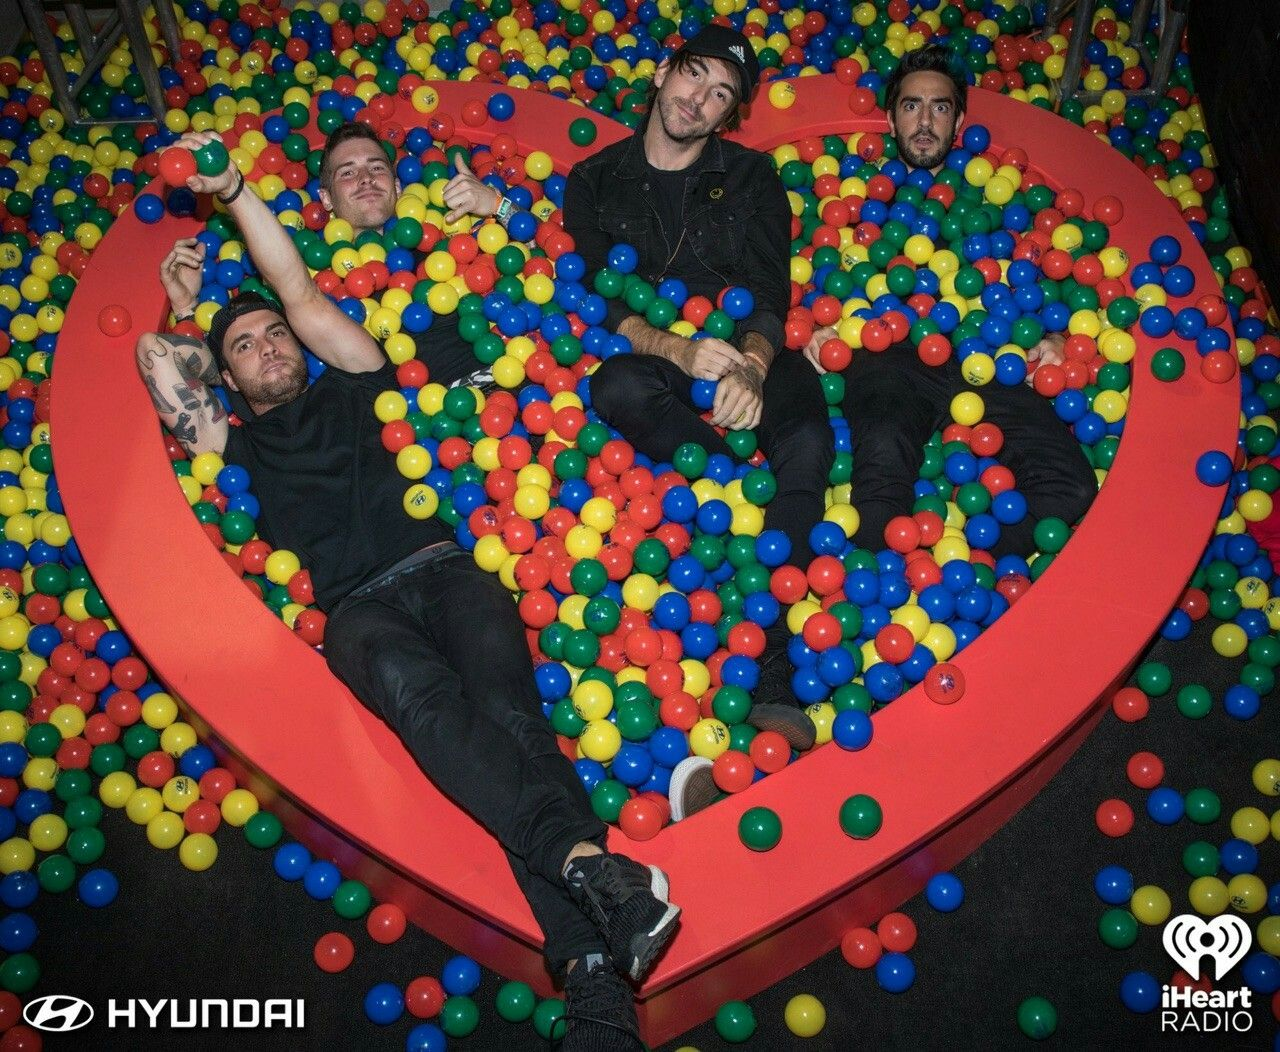 All Time Low in a ball pit *-*